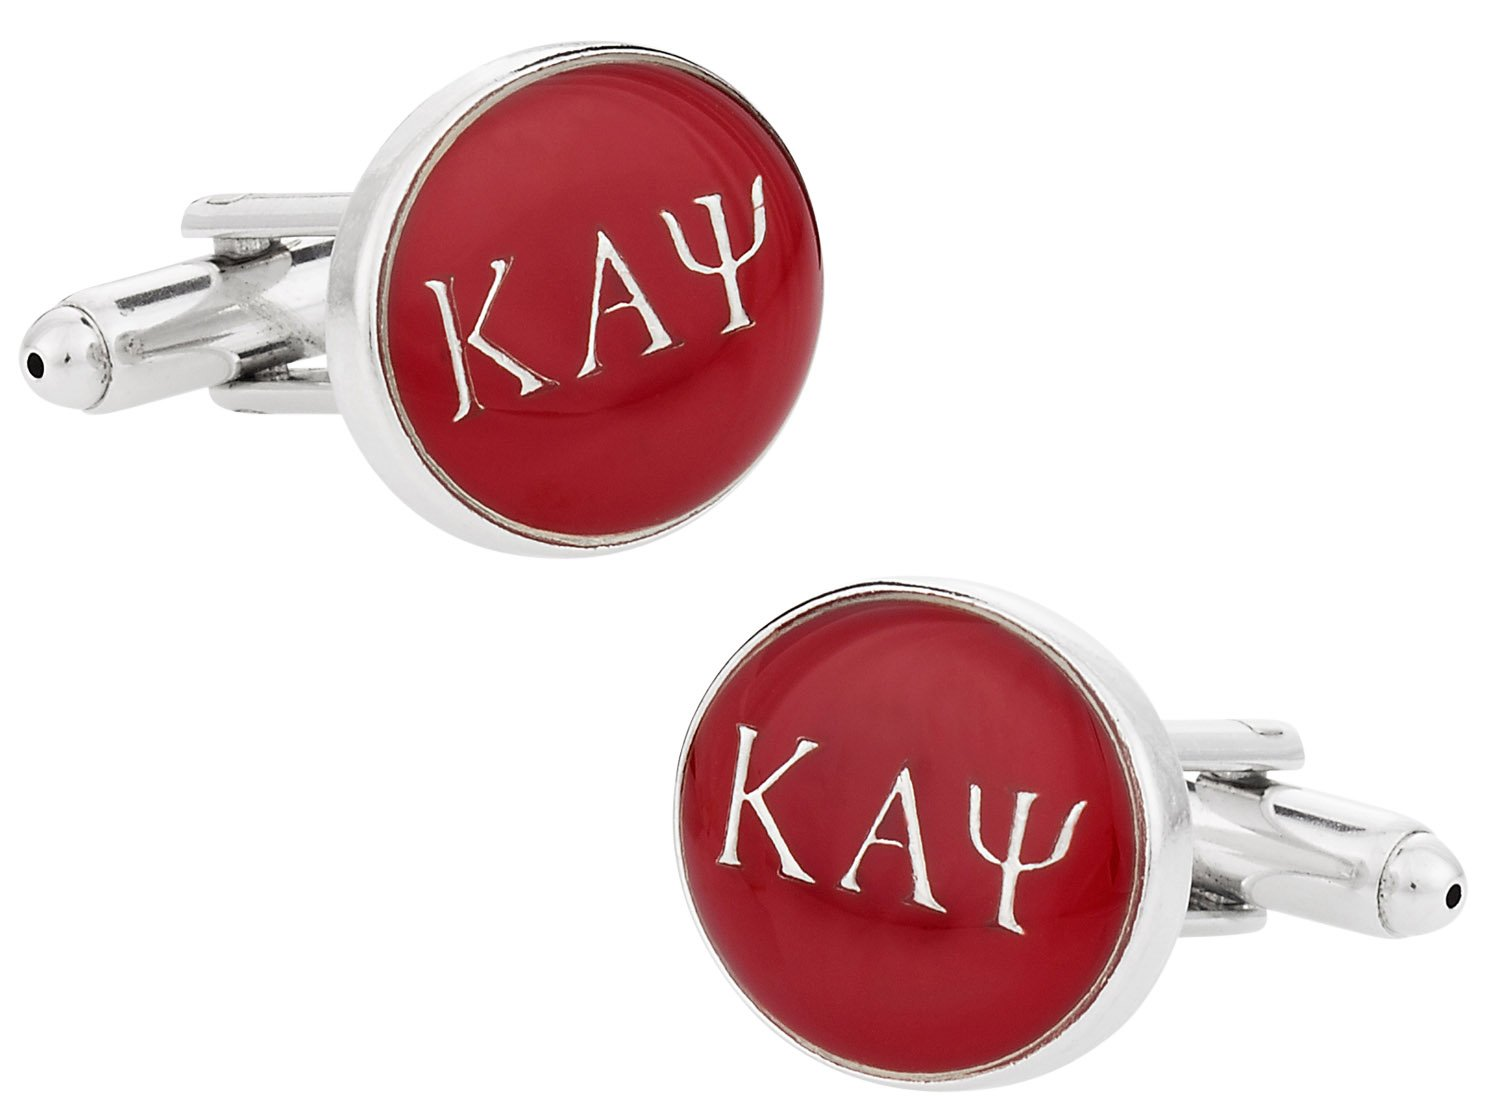 Cuff-Daddy Kappa Alpha Psi Cuff Links with Hard-Sided Presentation Box - Red & Silver